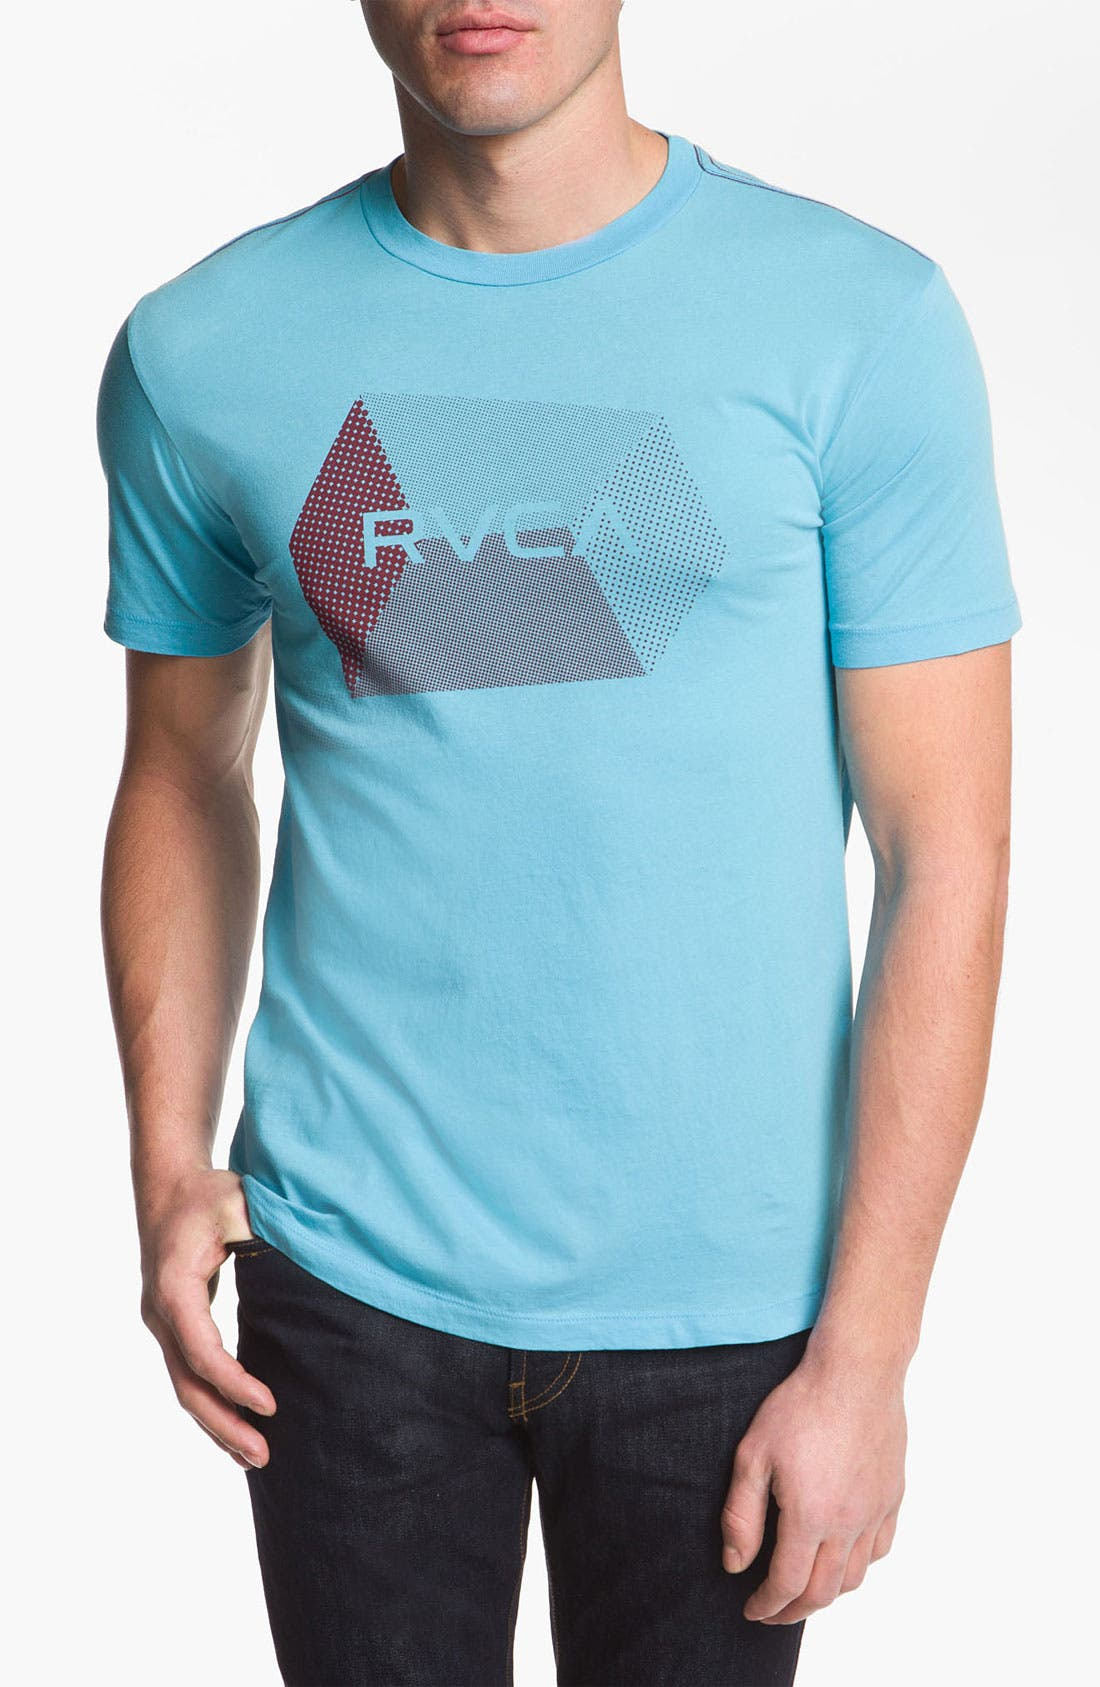 Alternate Image 1 Selected - RVCA 'Polygon Hex' Graphic T-Shirt